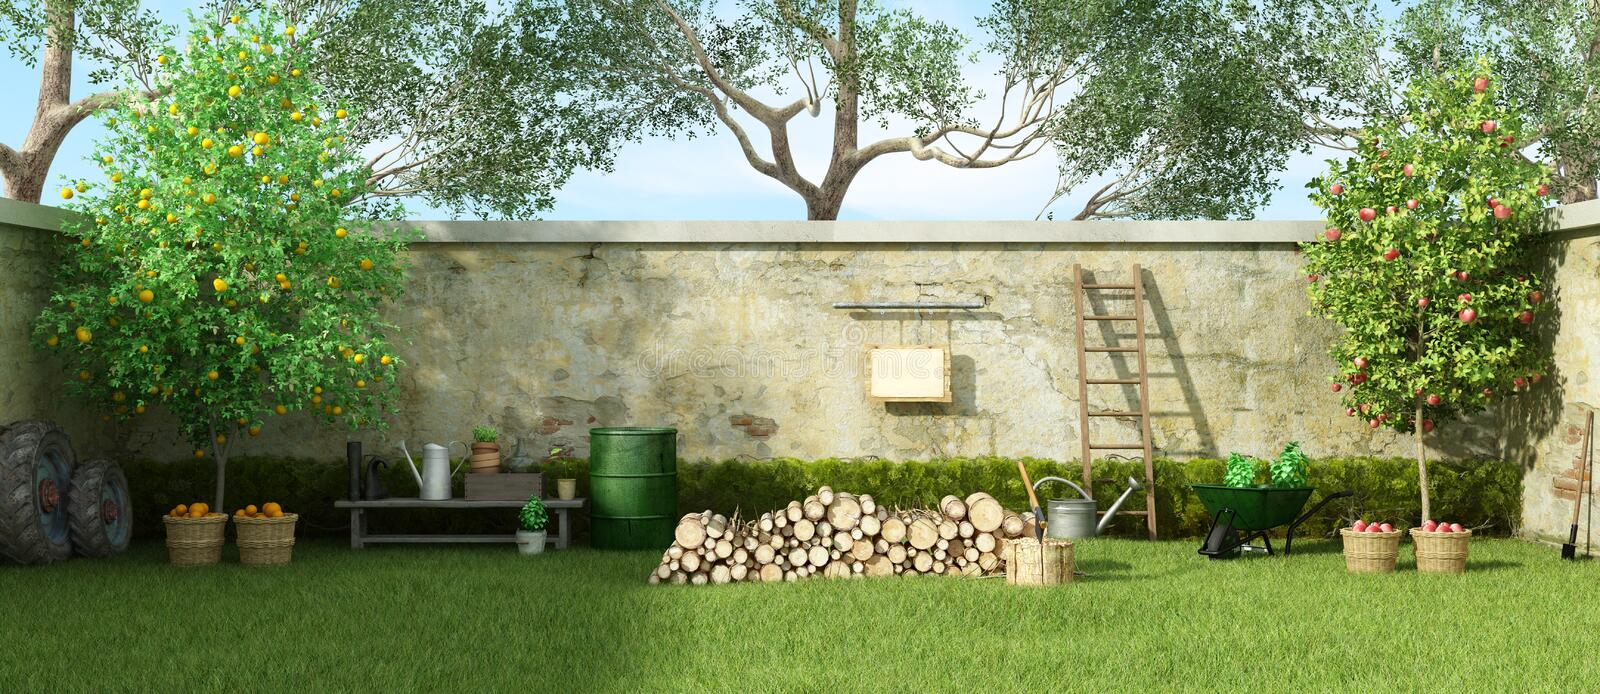 Rural garden in a sunny day. Rural garden with fruit trees and firewood on grass - 3d rendering royalty free illustration